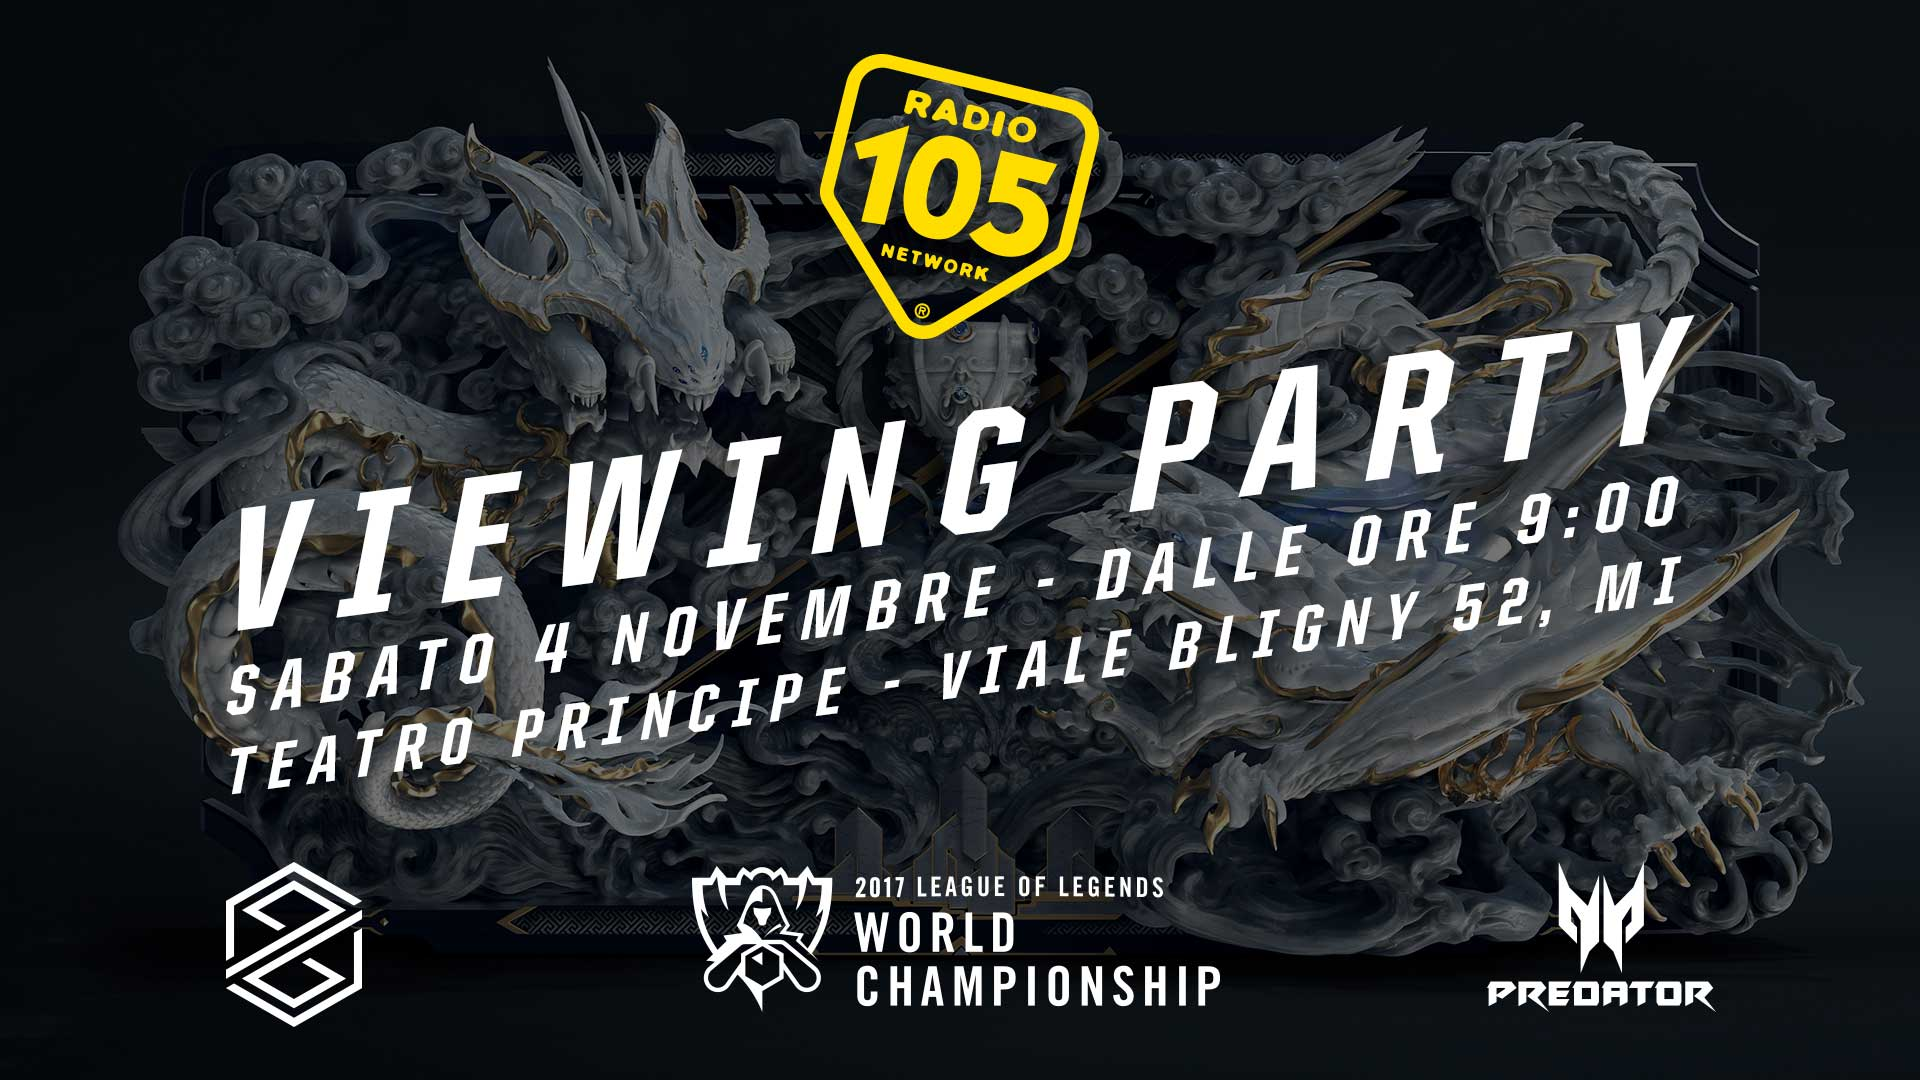 Radio 105 Viewing Party